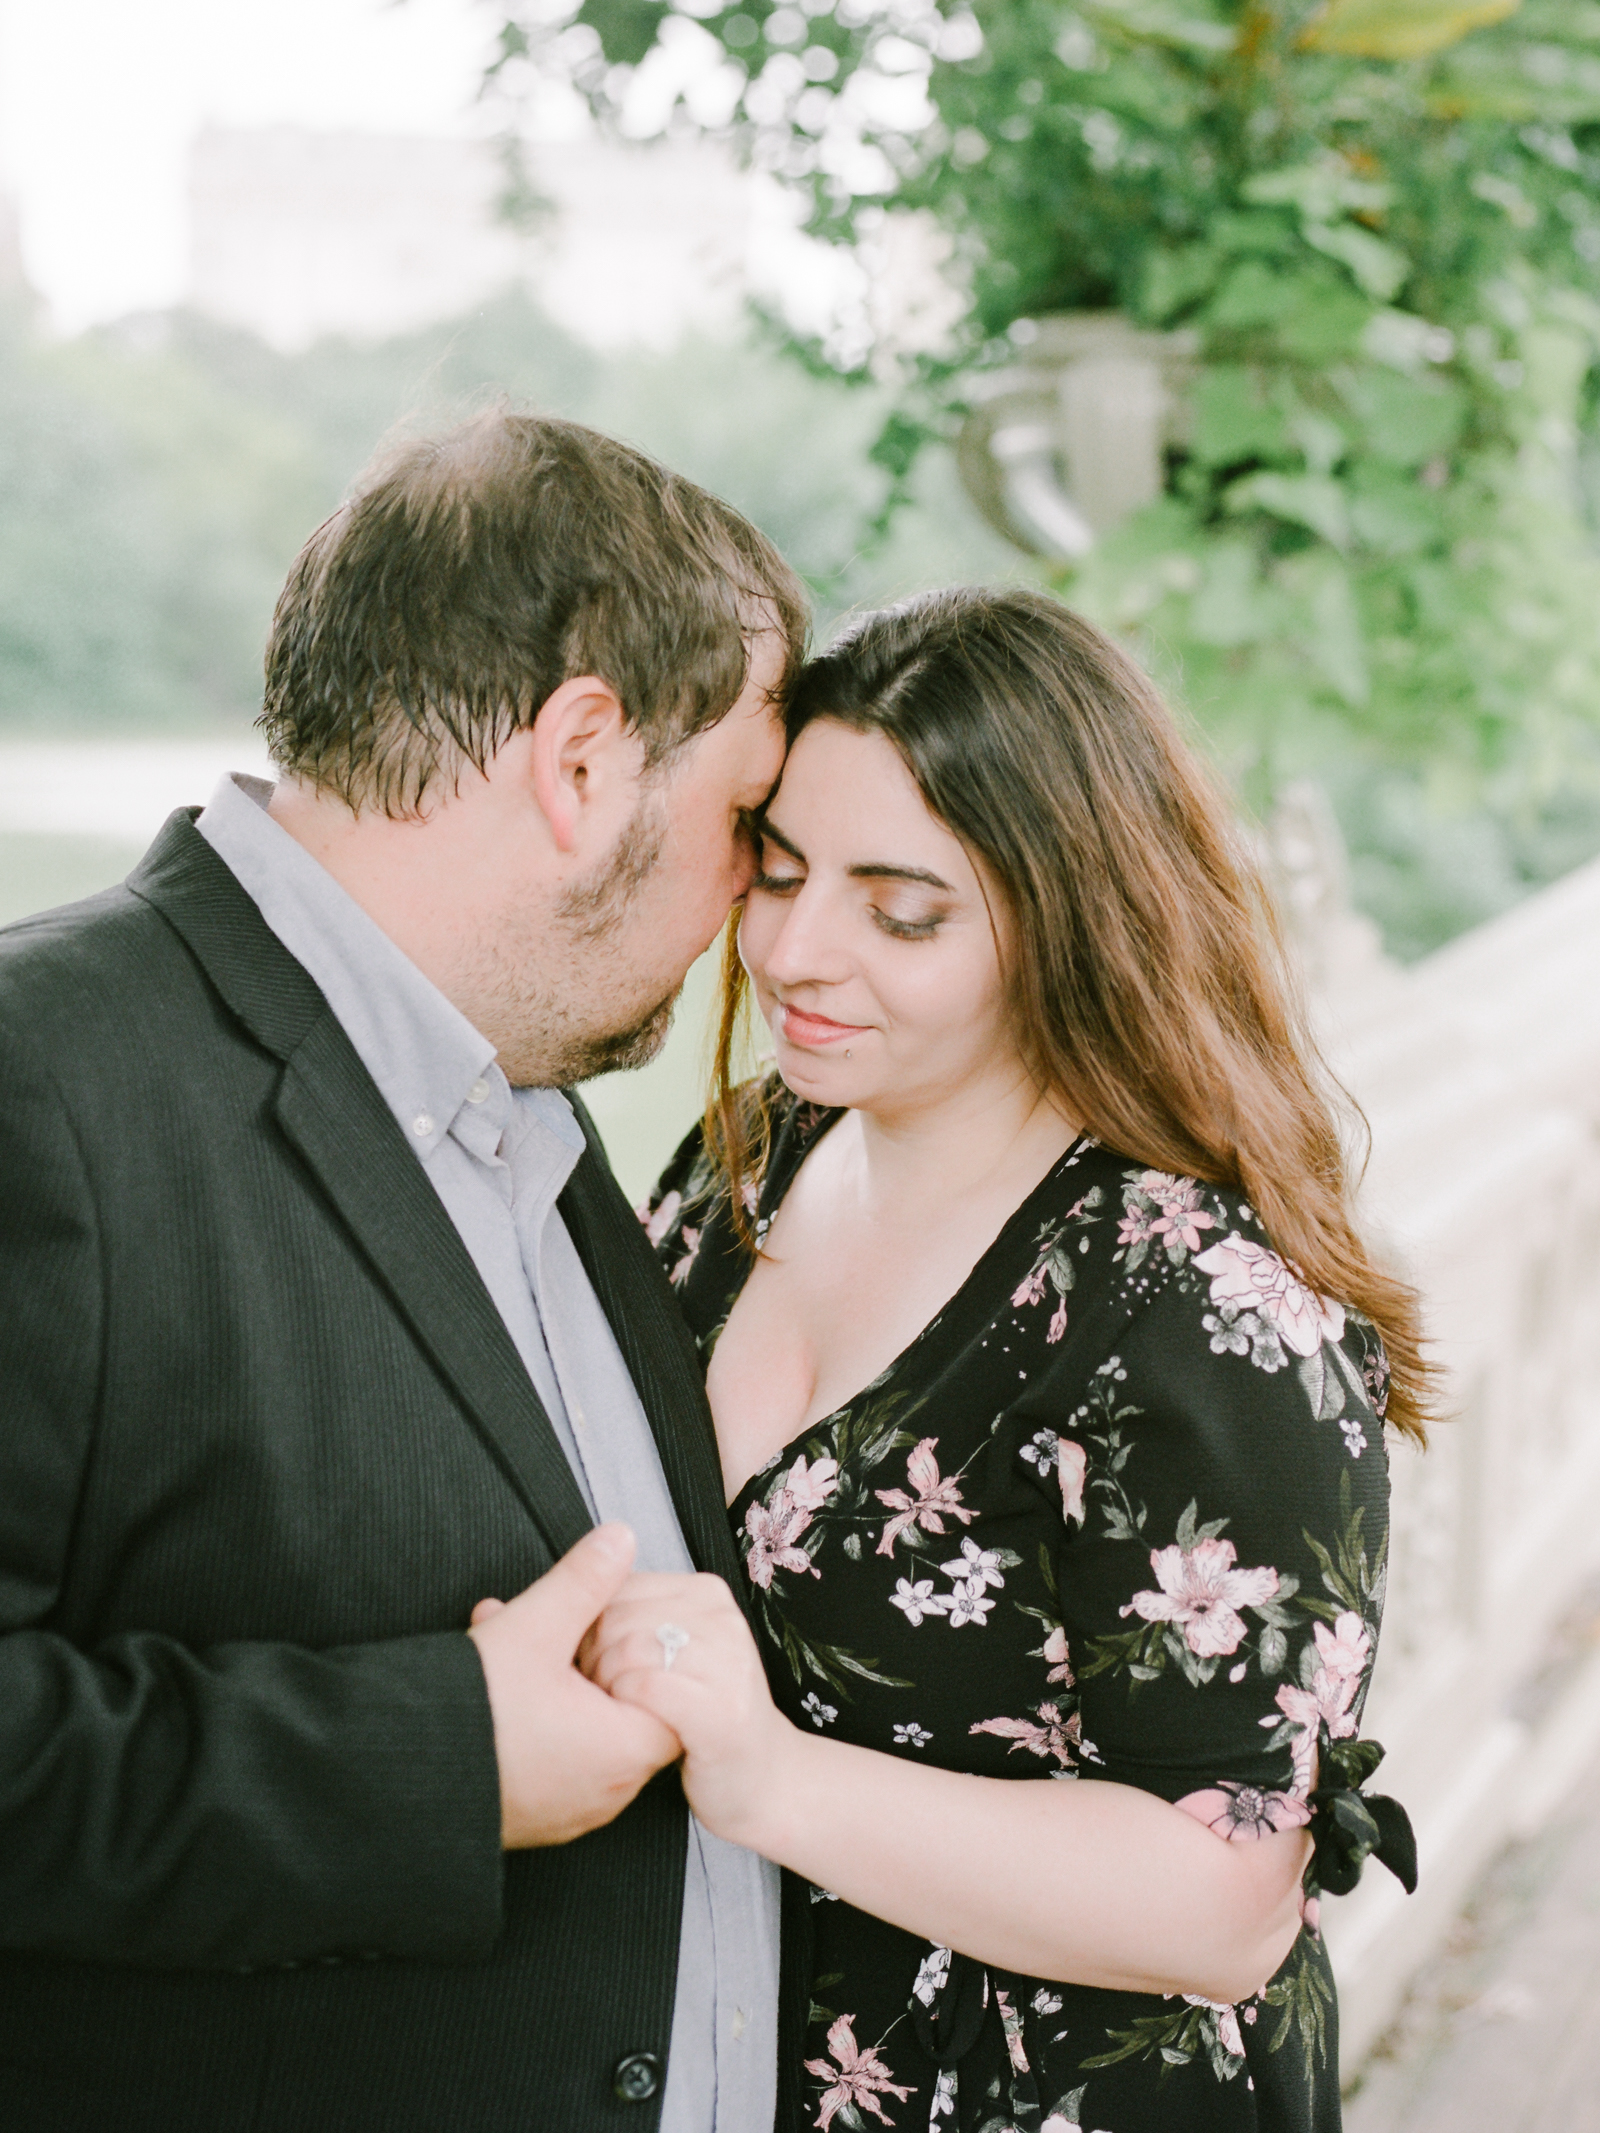 Central-Park-NYC-Engagement-Session-film-photography-23.jpg